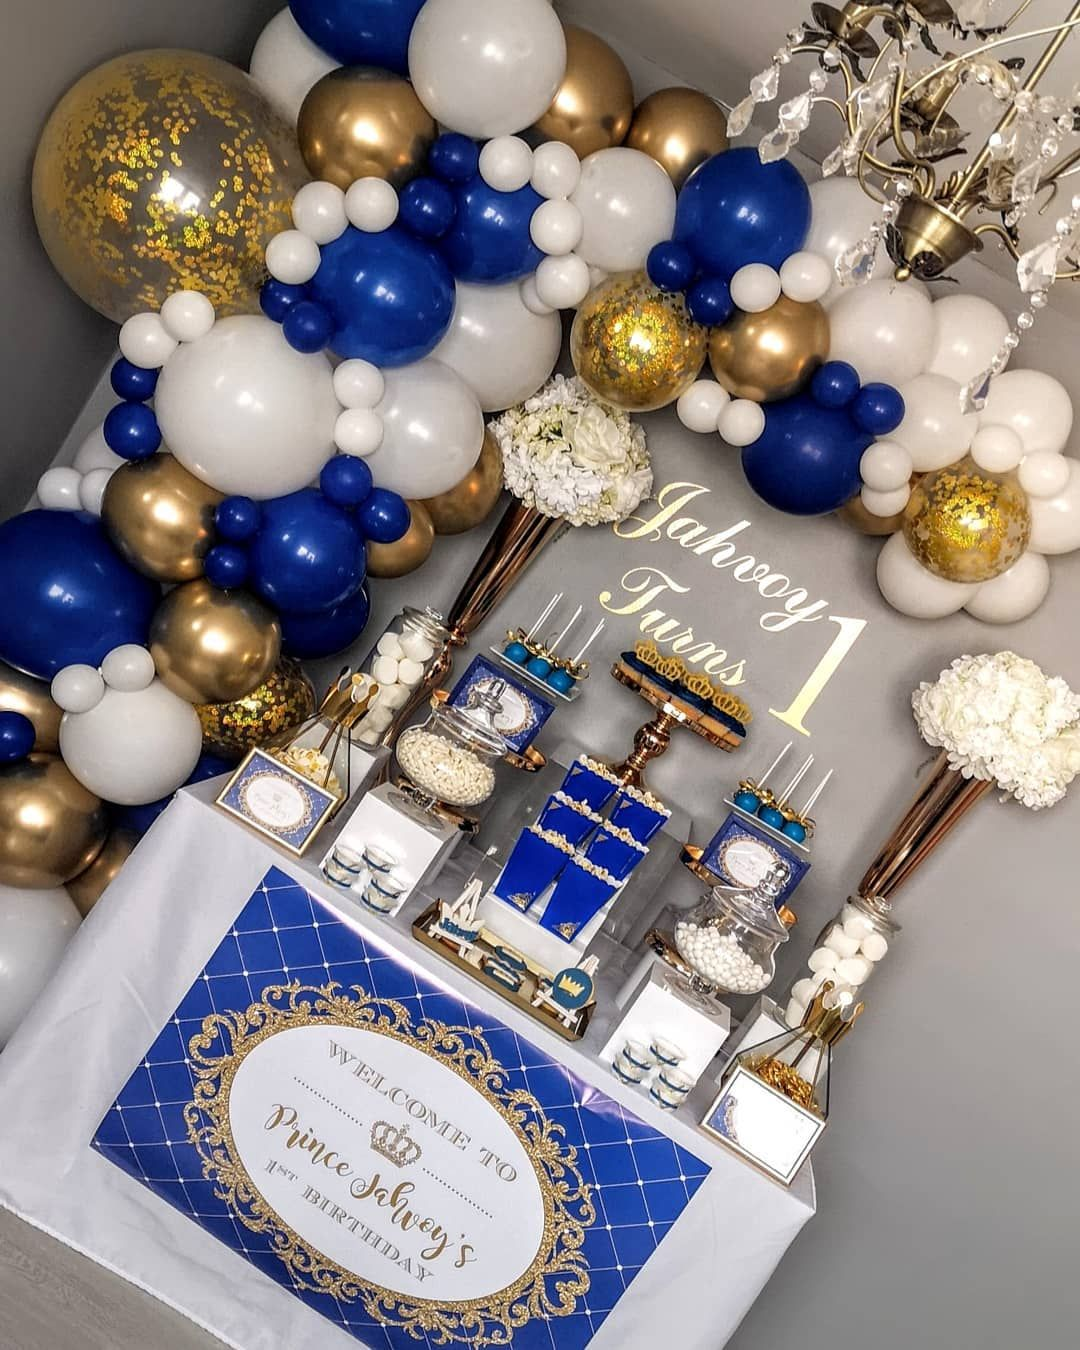 Mq Events On Instagram Mq Events Occasion 1st Birthday Theme Royal With Blue White Go Blue Birthday Parties Gold Birthday Party Blue Birthday Themes